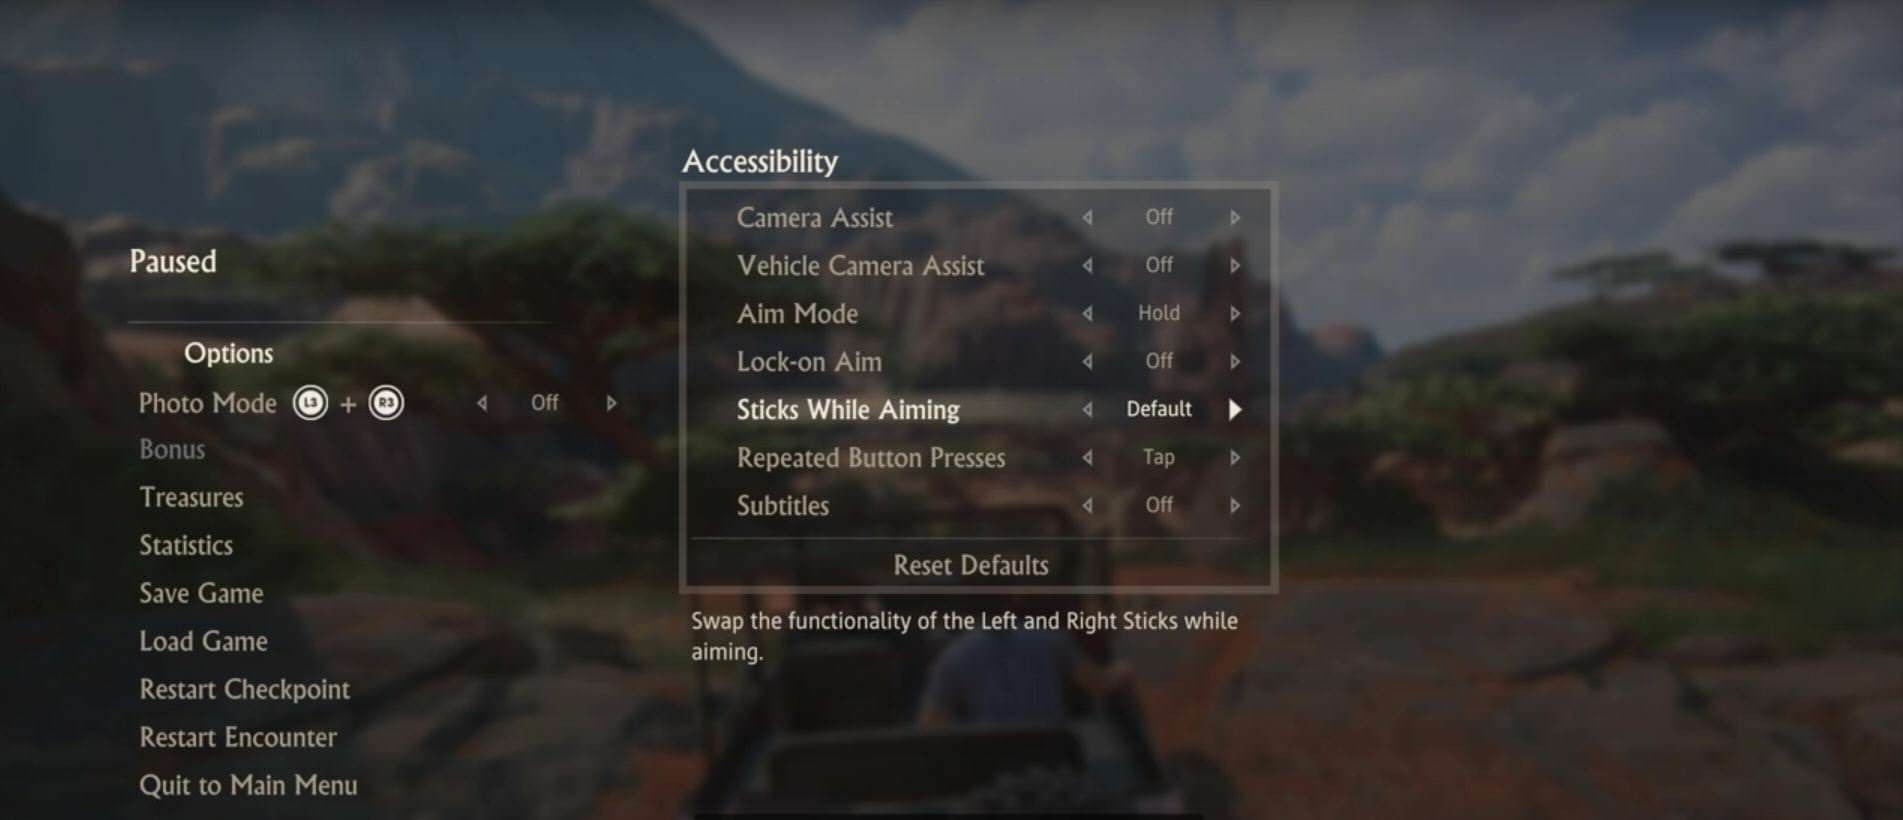 gcot8xisvyistdqslnve How One Disabled Player Inspired Uncharted 4s Accessibility Options